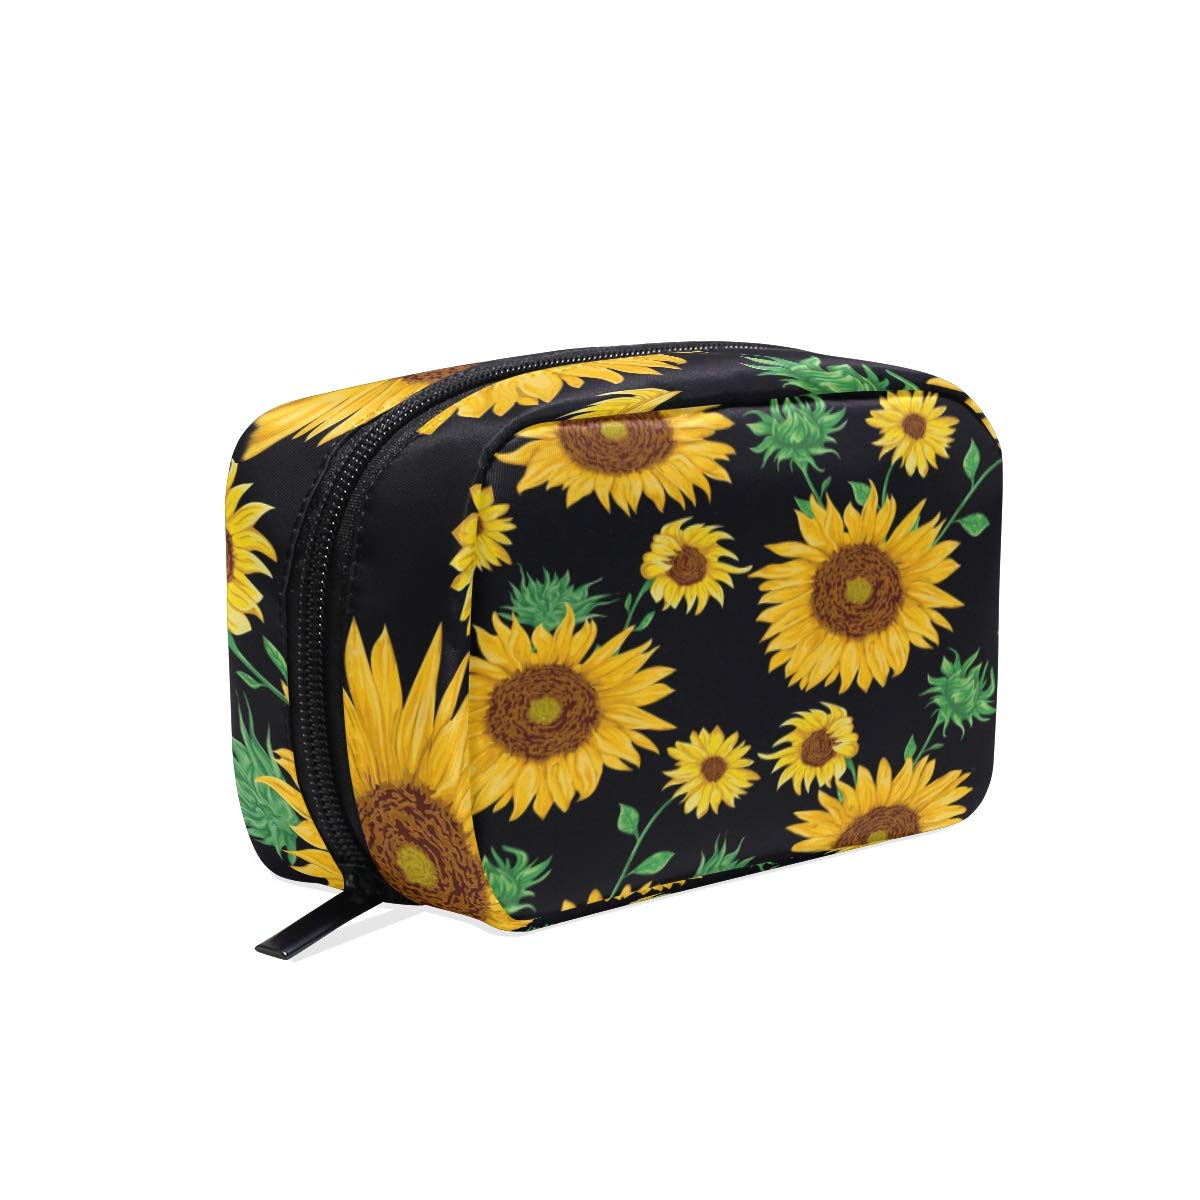 ALAZA Yellow Sunflower Floral Makeup Cosmetic Portable Pouch Bag Organizer Capacity Storage Bag Gift for Women Girls